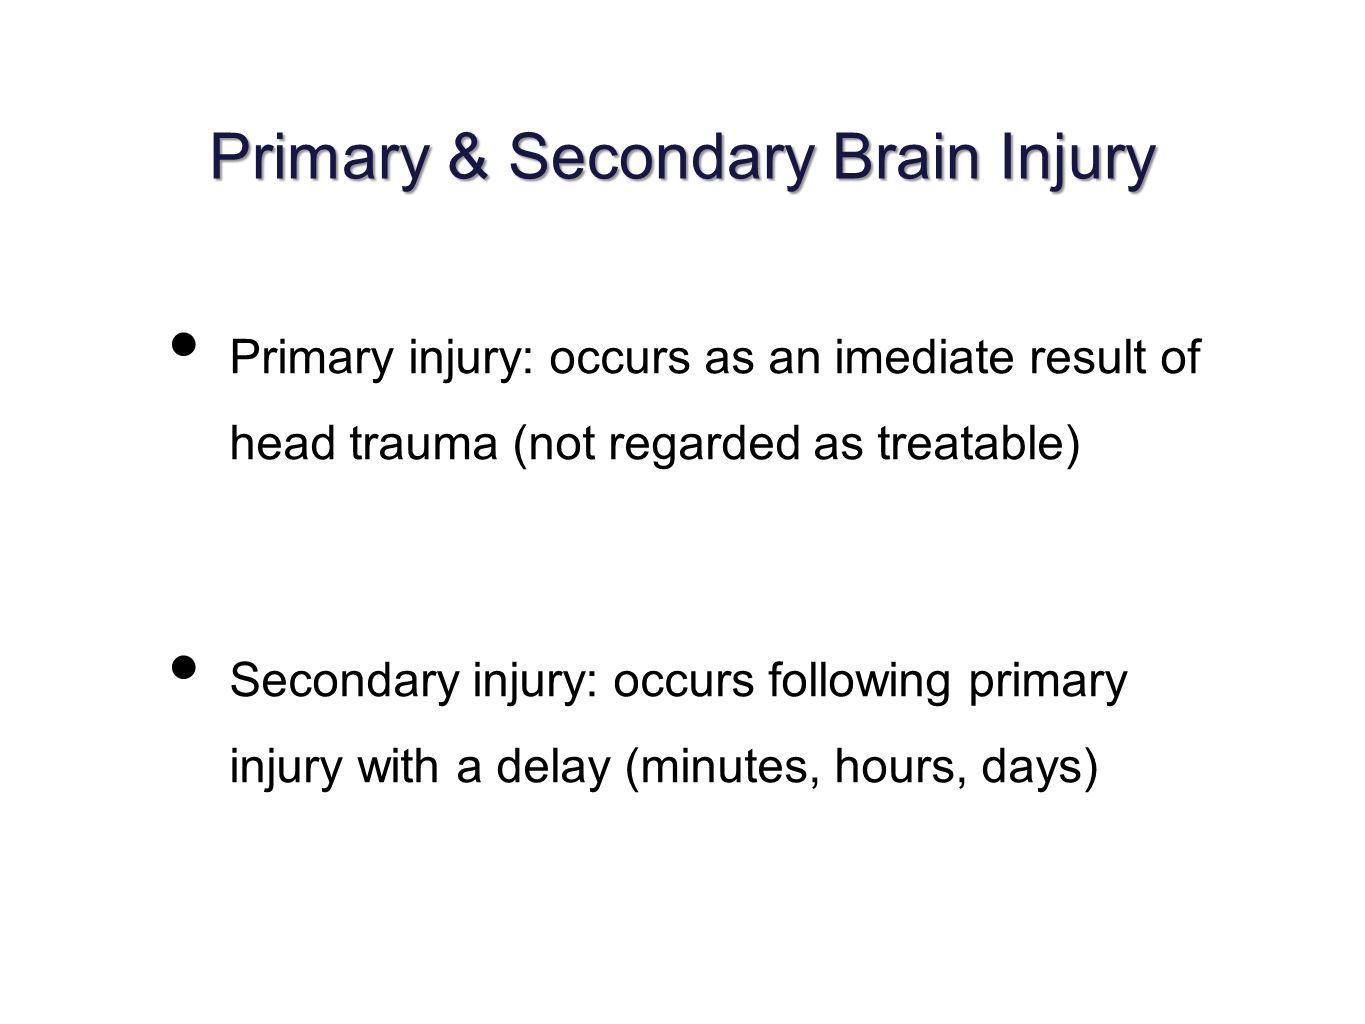 Primary & Secondary Brain Injury Primary injury: occurs as an imediate result of head trauma (not regarded as treatable) Secondary injury: occurs following primary injury with a delay (minutes, hours, days)